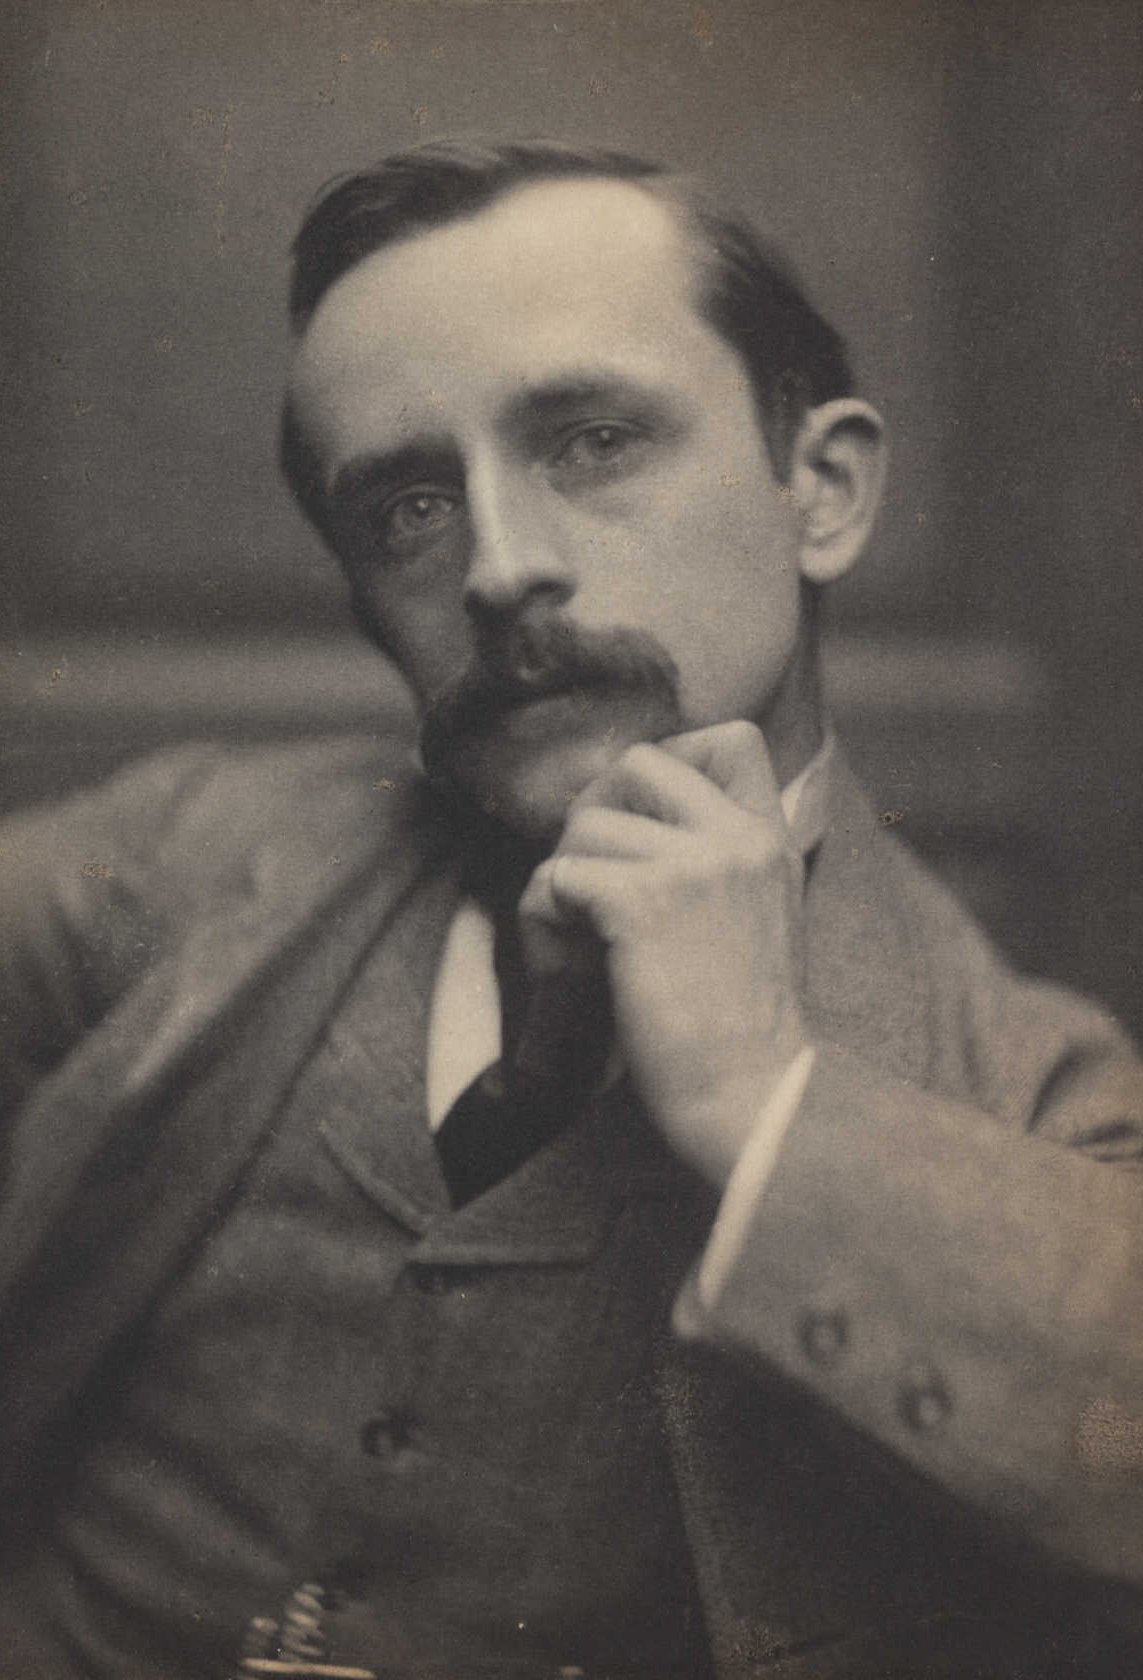 j.m barrie peter pan essay Peter pan essay - get a 100% authentic from previous years with an early playwright j m barrie's magical write my essay frazier of the theatrical role.